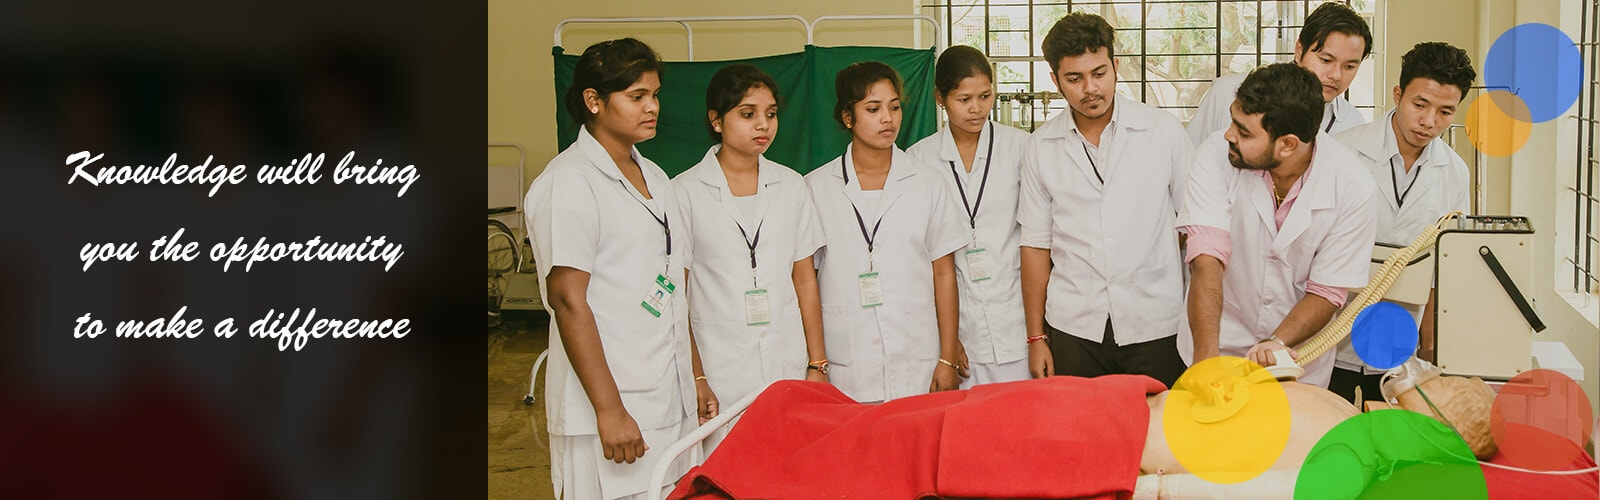 BSc nursing admission in North bangalore